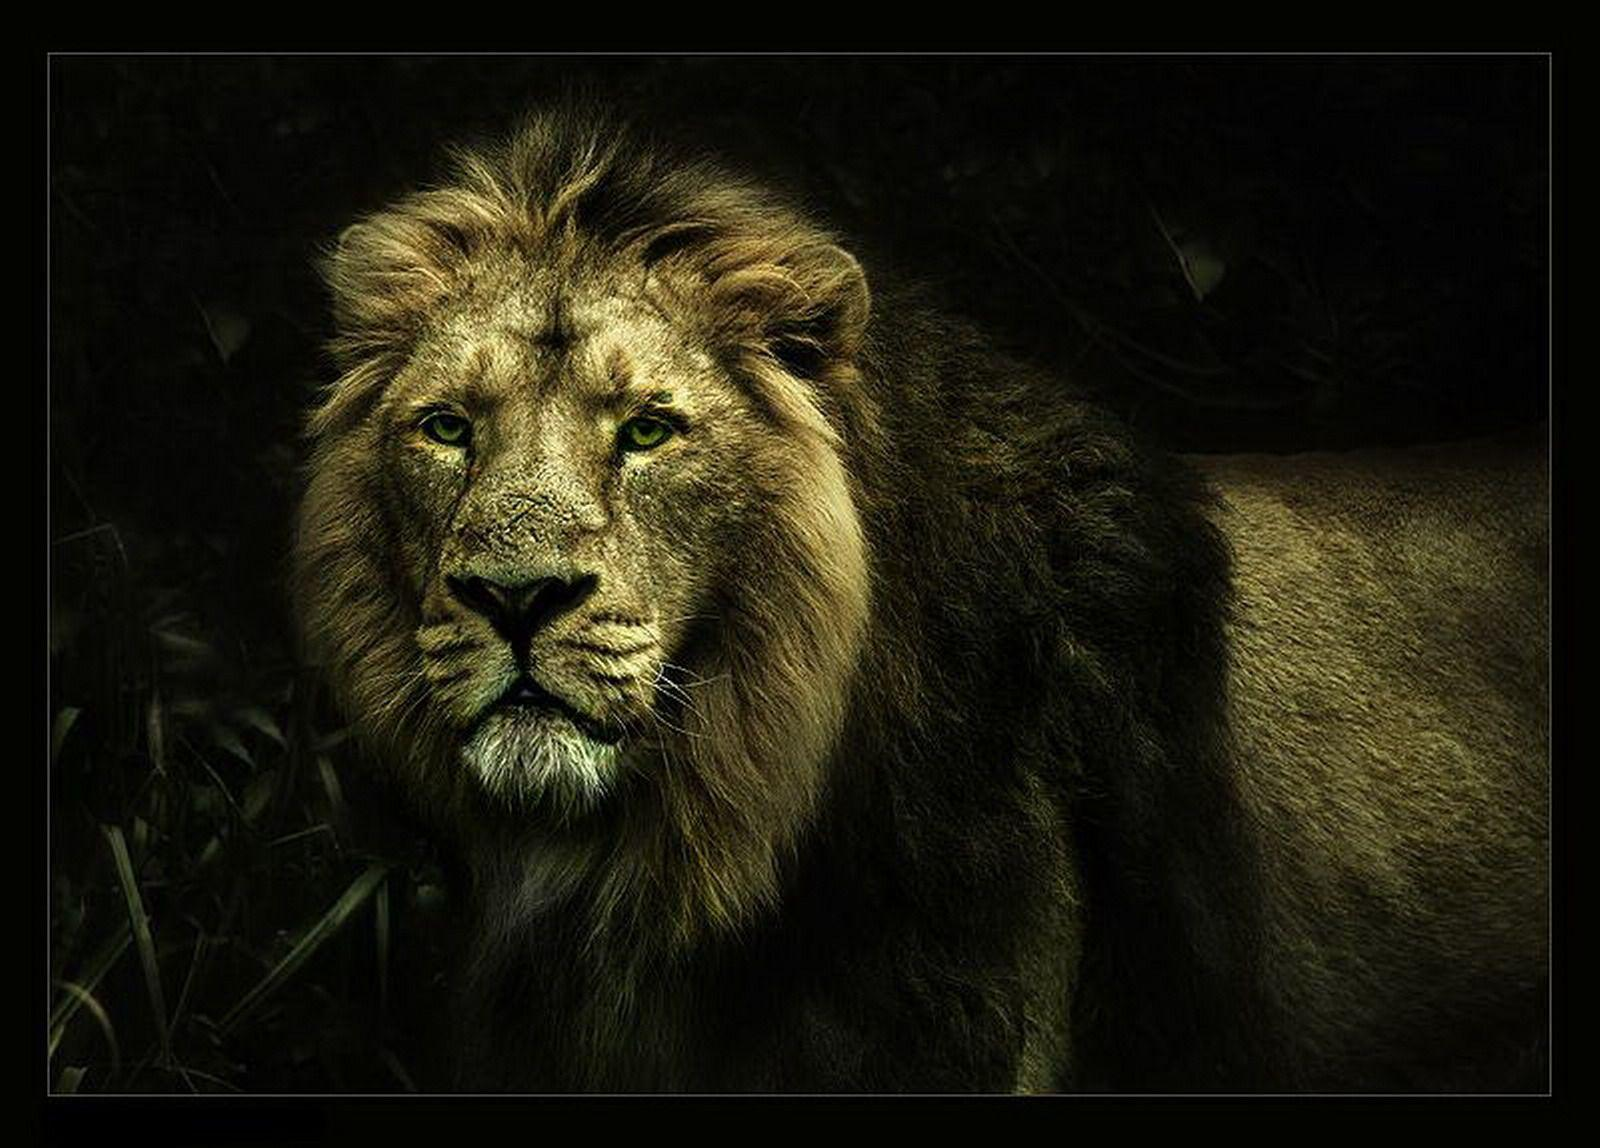 lion wallpapers | lion wallpapers - Part 5